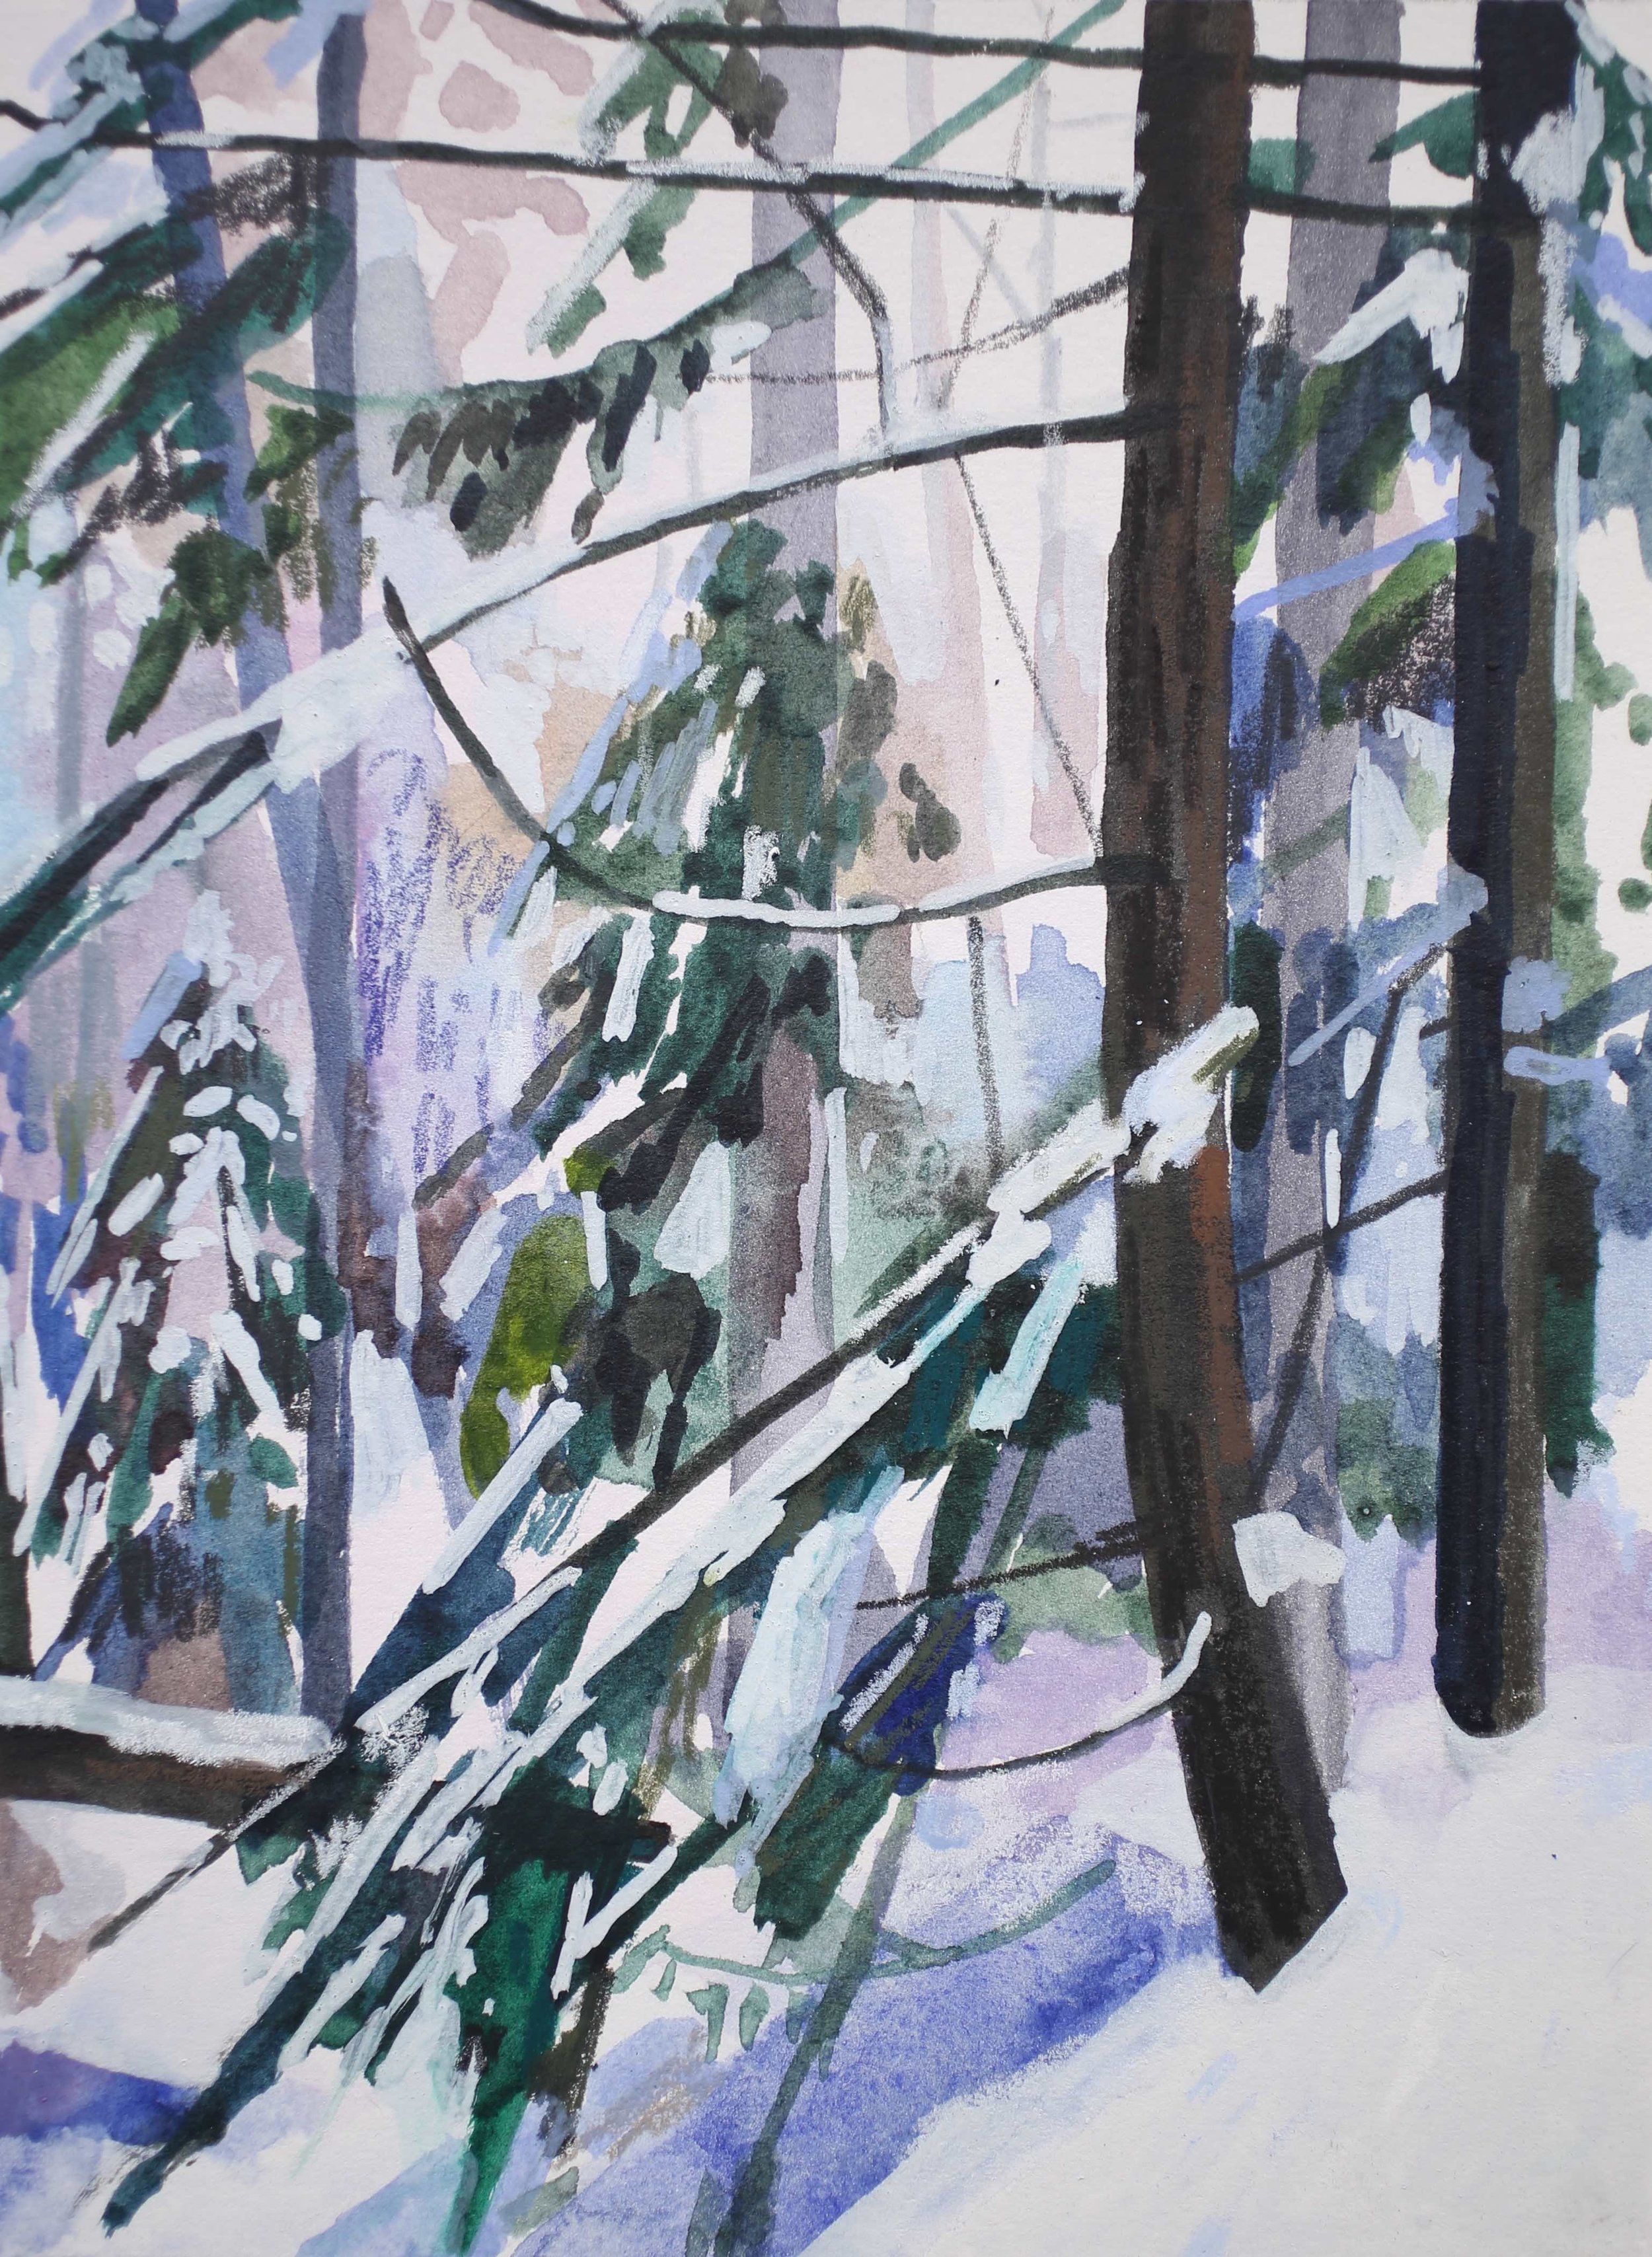 Snow and Trees, 2017